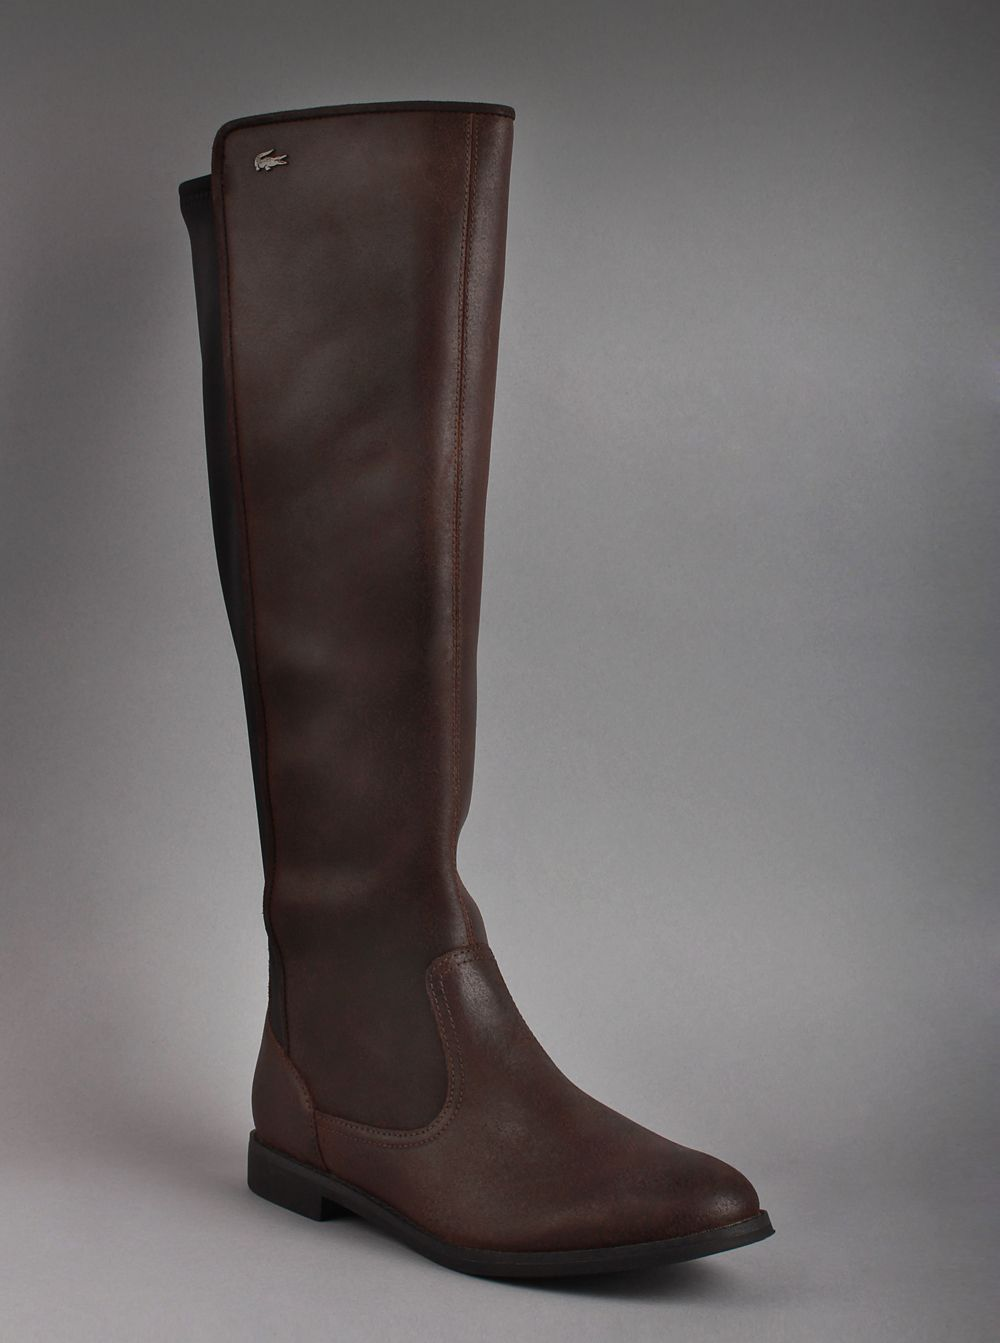 0ea6bc0e5 Lacoste® Women s Rosemont 5 Boots in Dark Brown. Take a walk this winter in  these gorgeous leather boots that show off your great sense of style.